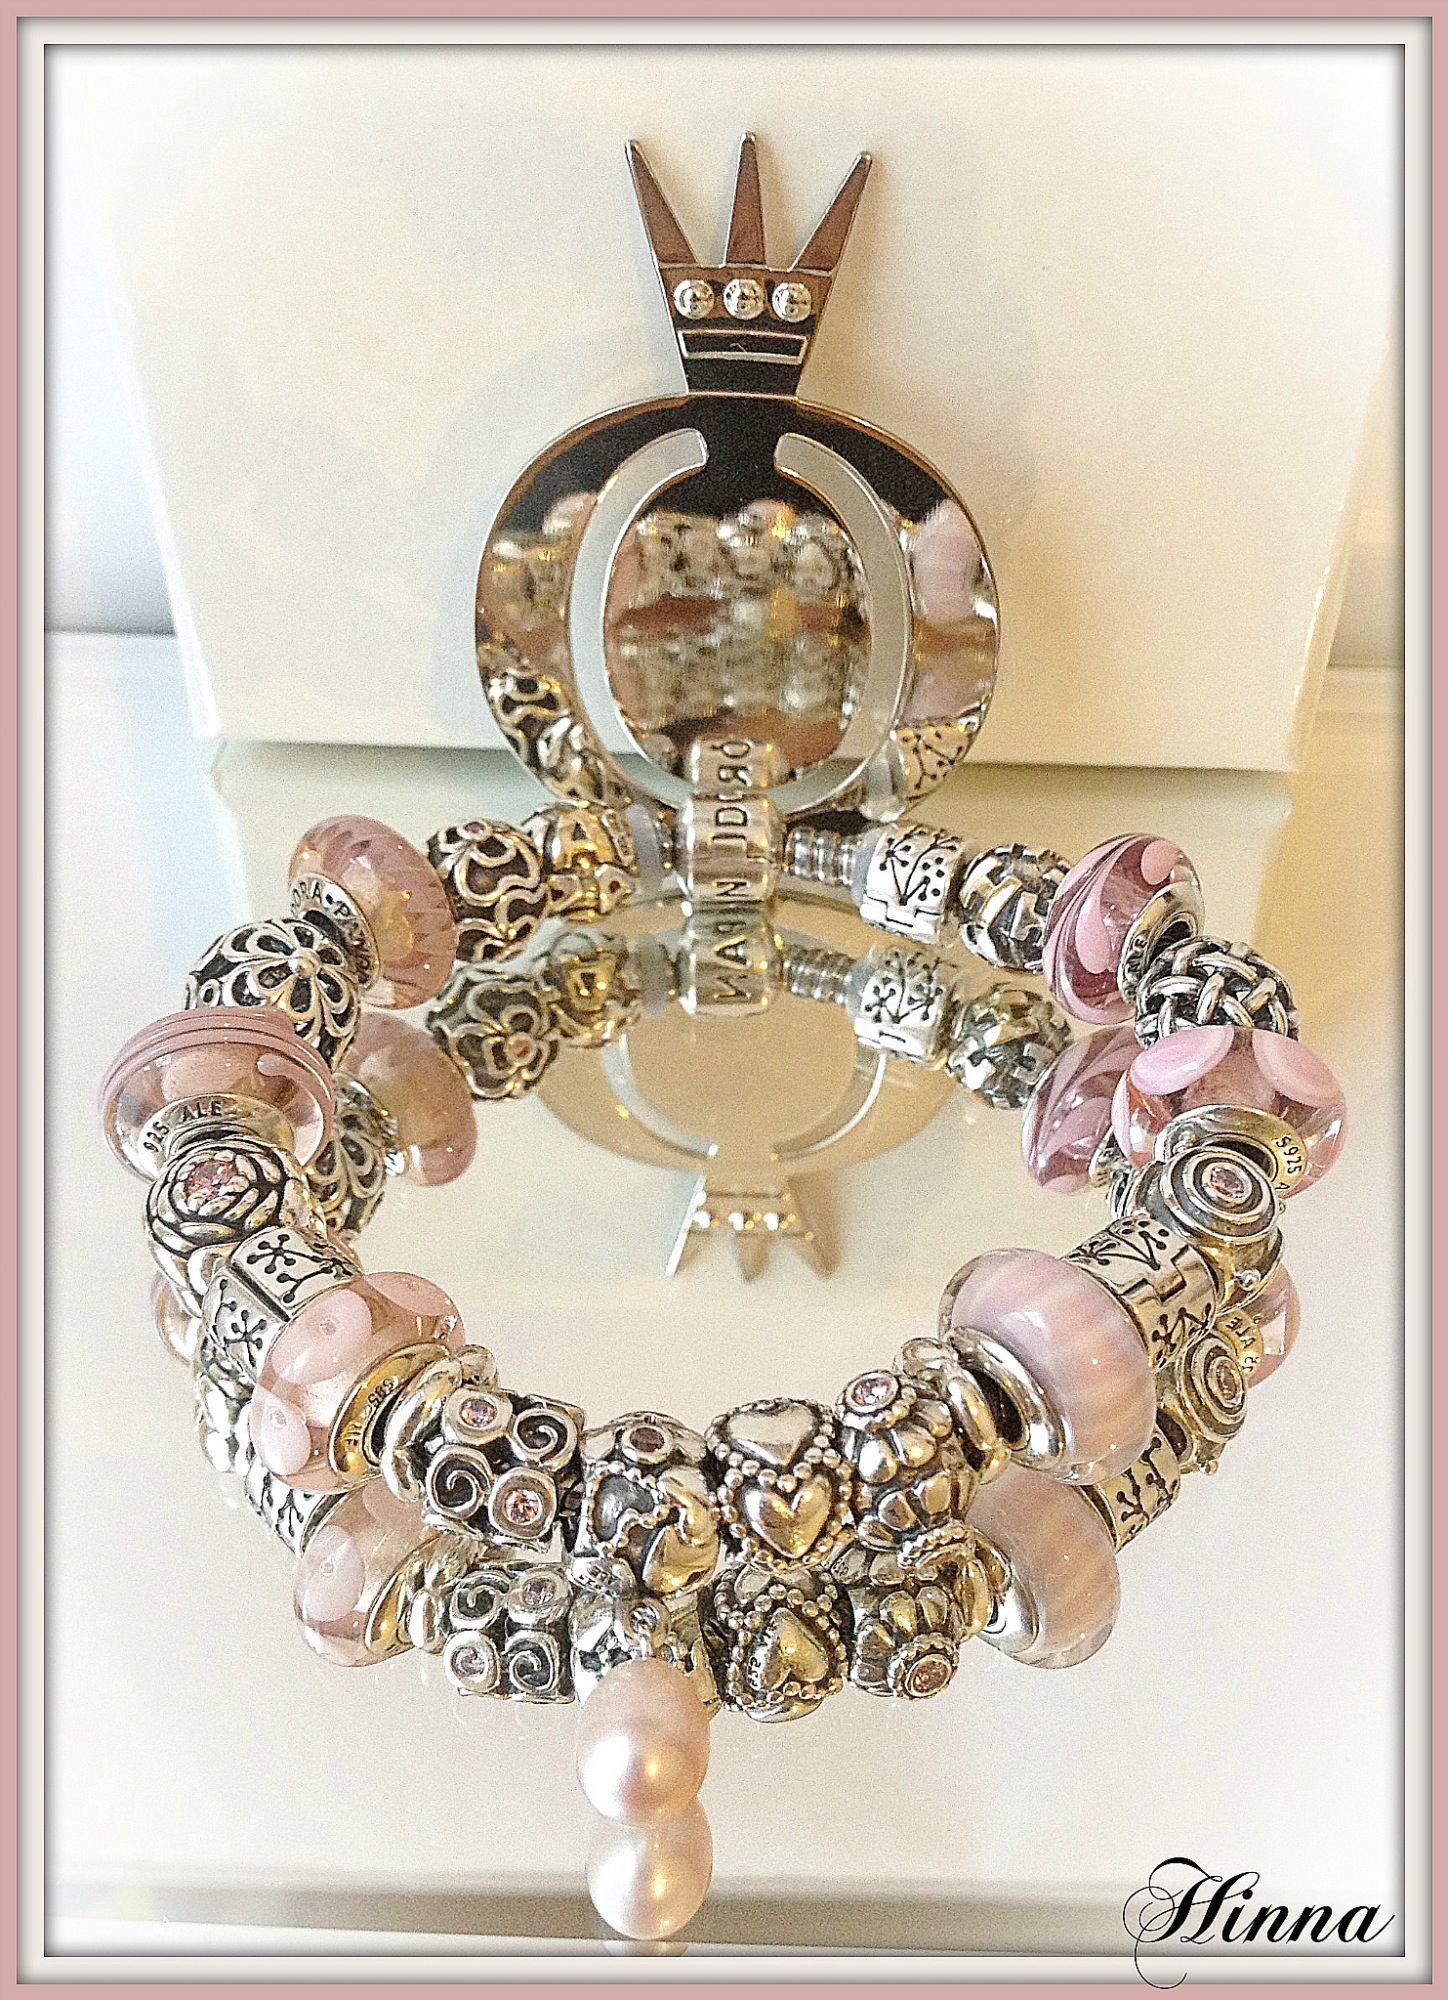 07bc94b16 A gorgeous Pandora Bracelet. Available now at Renaissance Fine Jewelry in  Brattleboro, Vermont. Call us 1-800-251-0600 to order yours today!